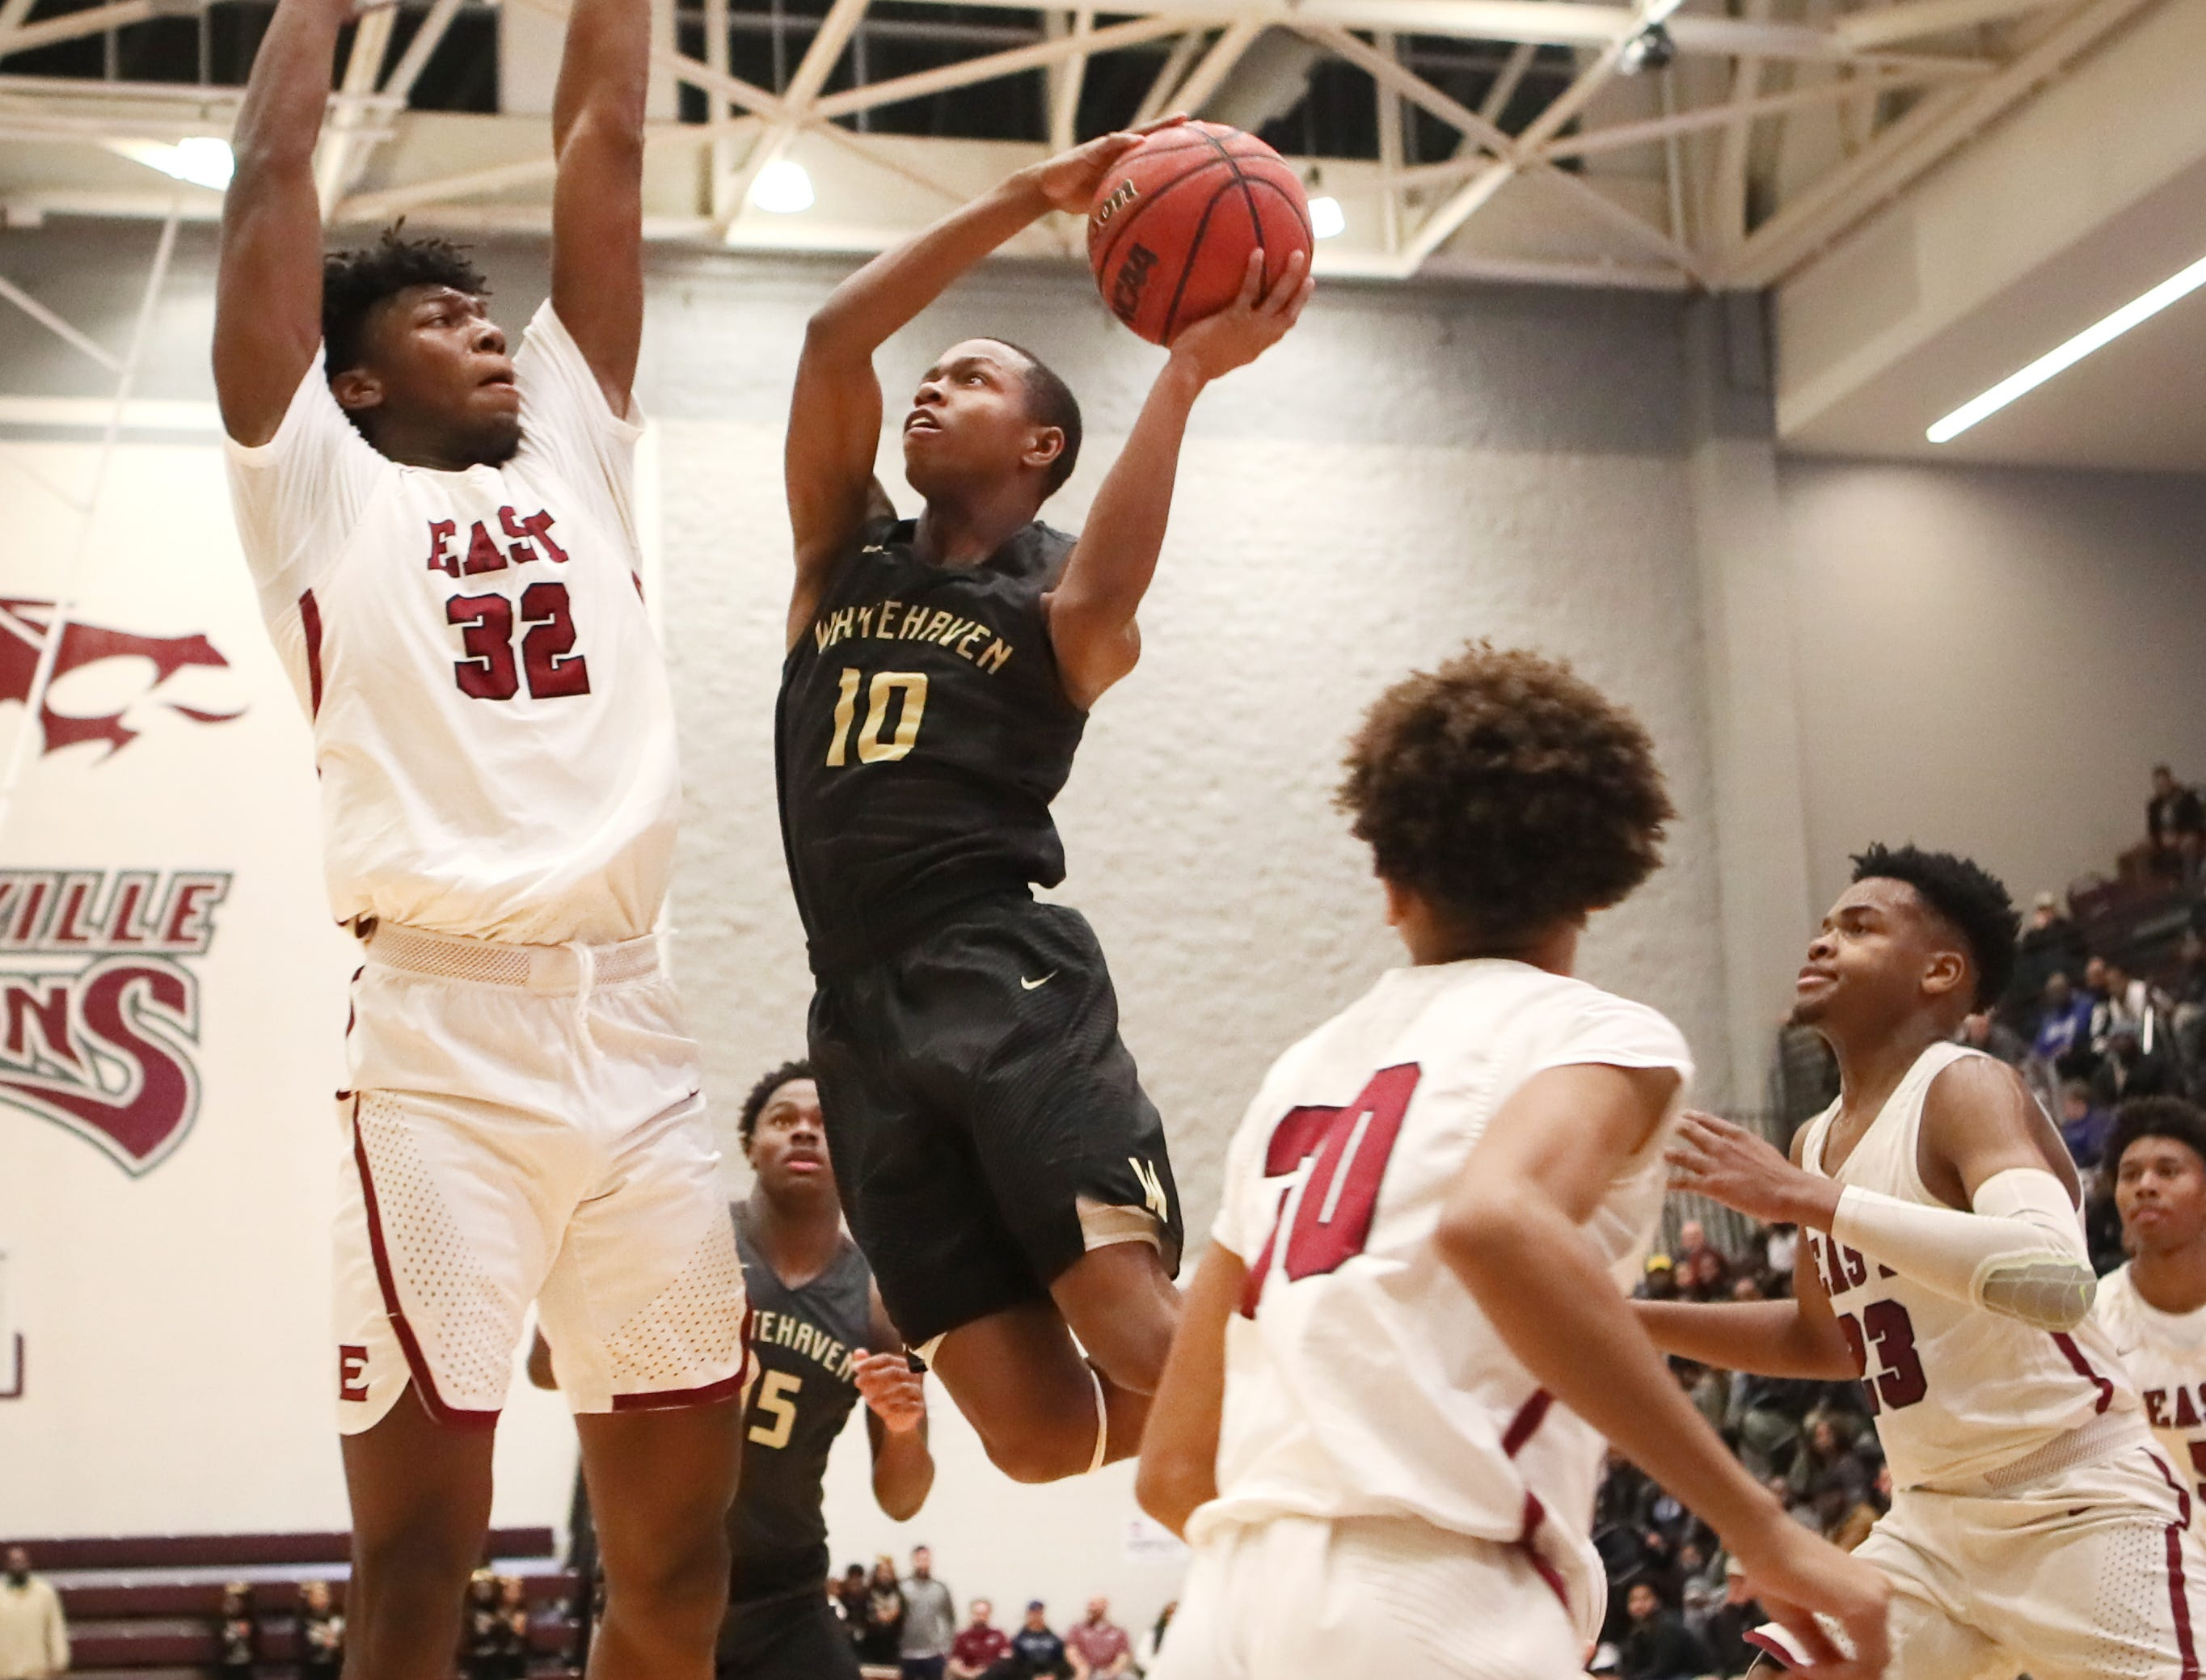 Whitehaven's Antnarn Smith tries to put a shot up against the defense of Memphis East's James Wiseman during their Region 8AAA Championship game at Collierville High School on Thursday, Feb. 28, 2019.